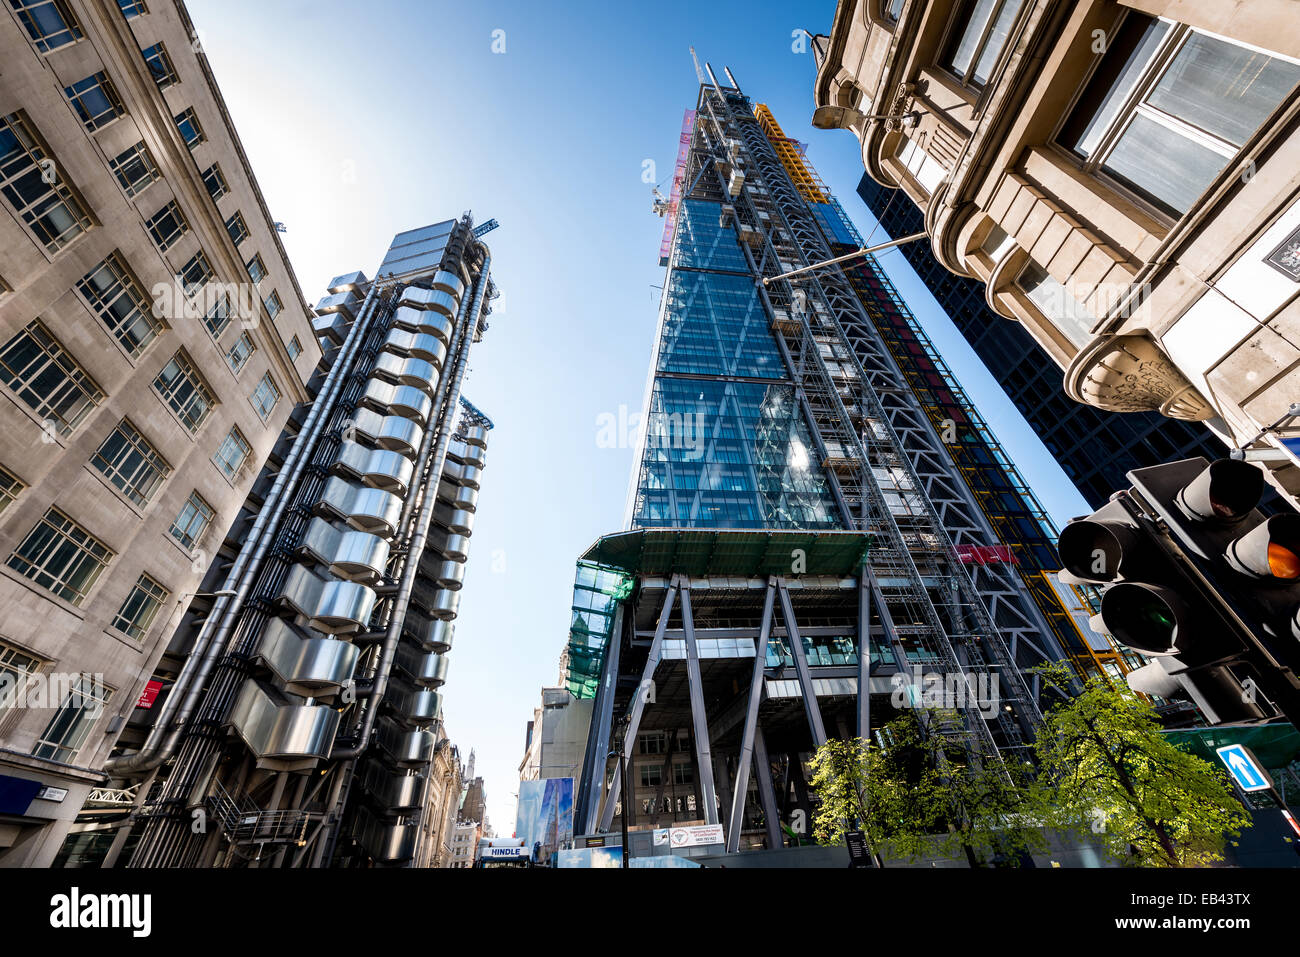 Lloyd's Building, Cheesegrater, Gherkin (reflected), City of London - Stock Image